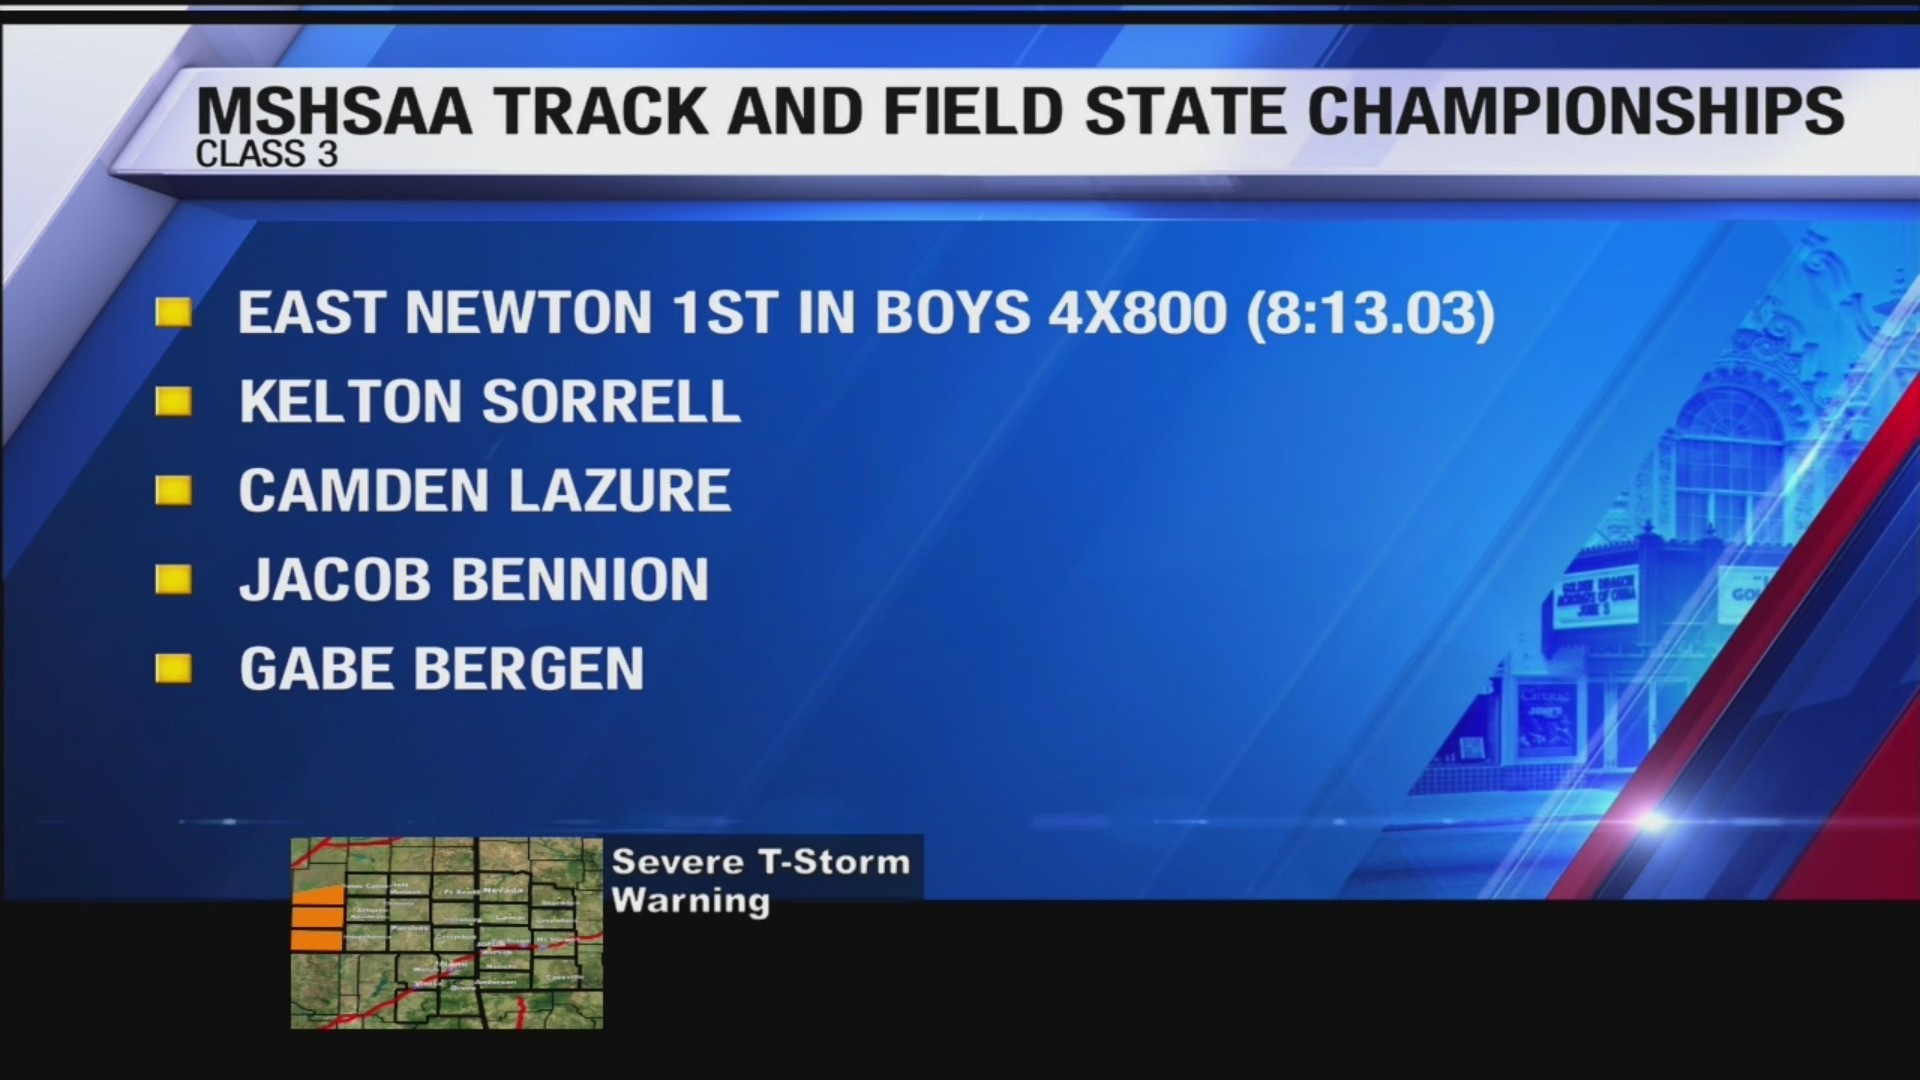 East Newton Wins State in Boys 4x800 Race